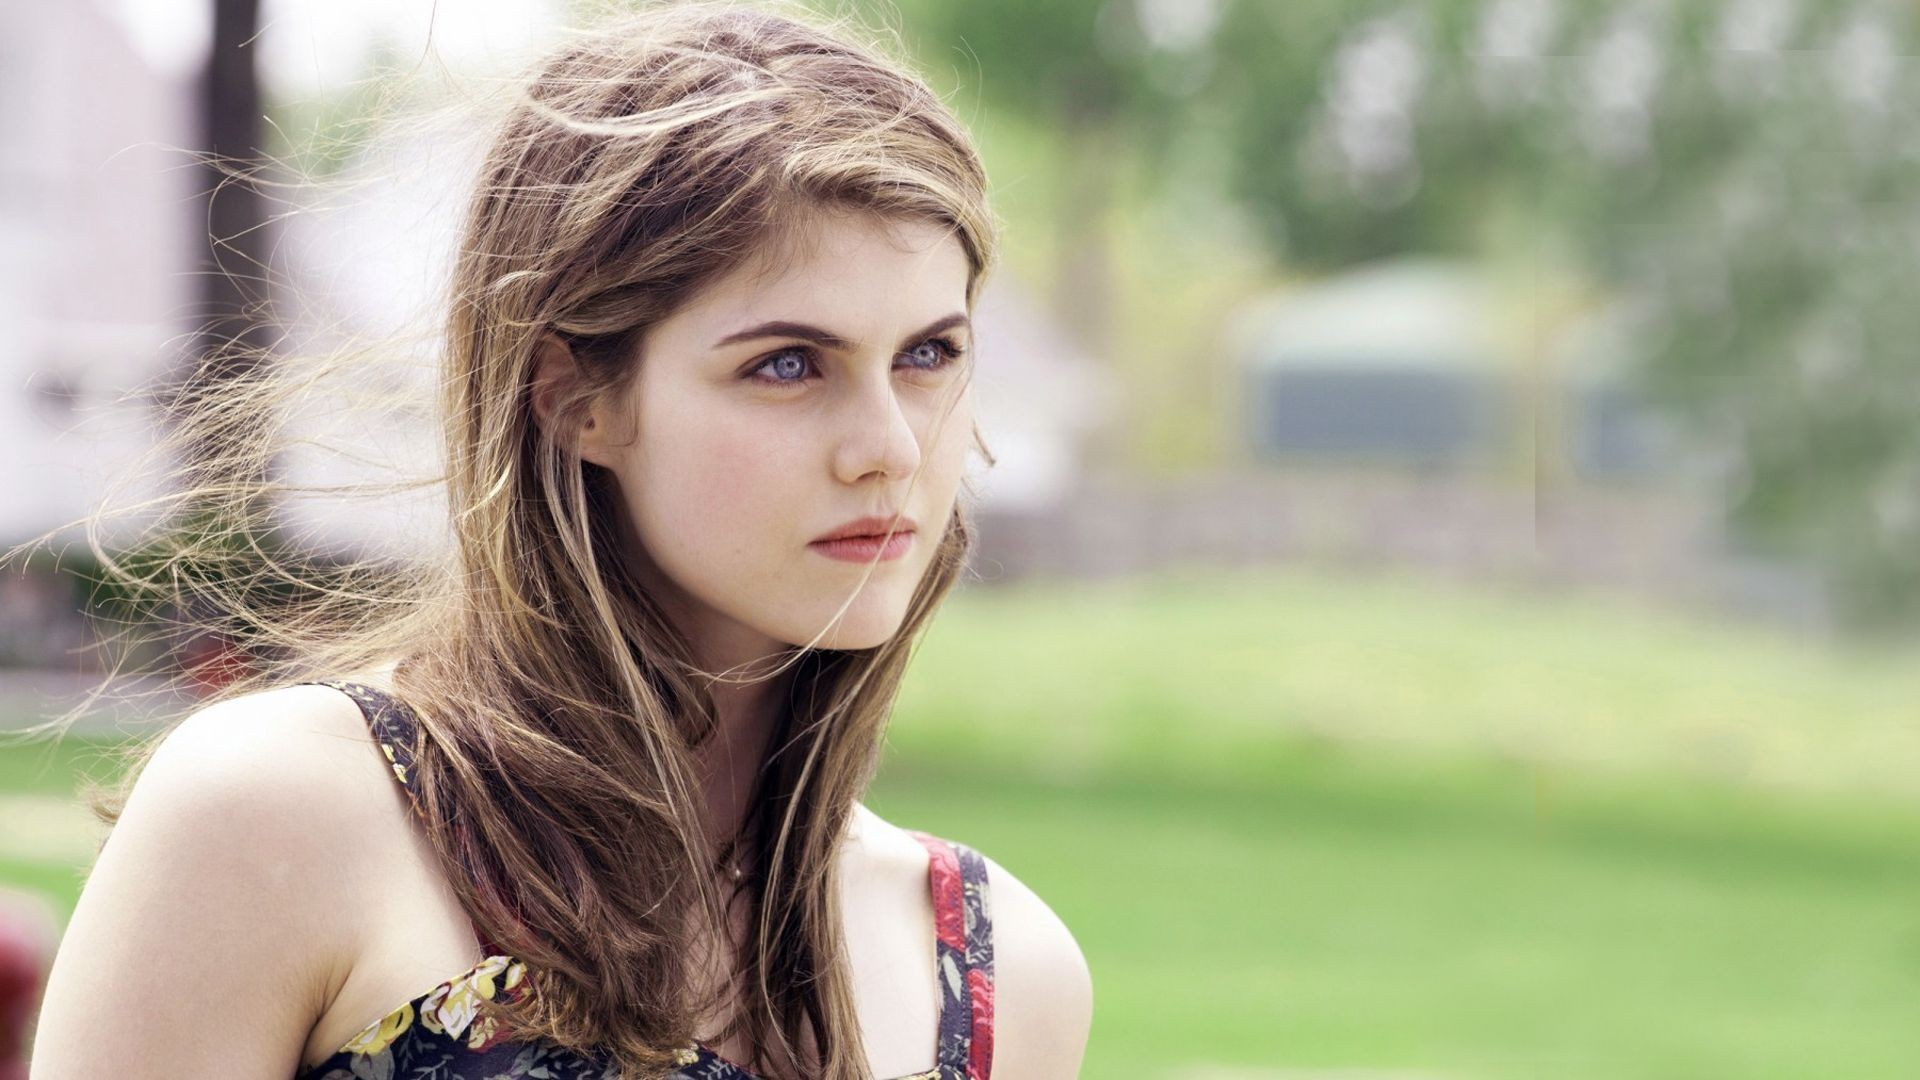 Actress wallpapers 67 background pictures 1920x1080 thecheapjerseys Image collections